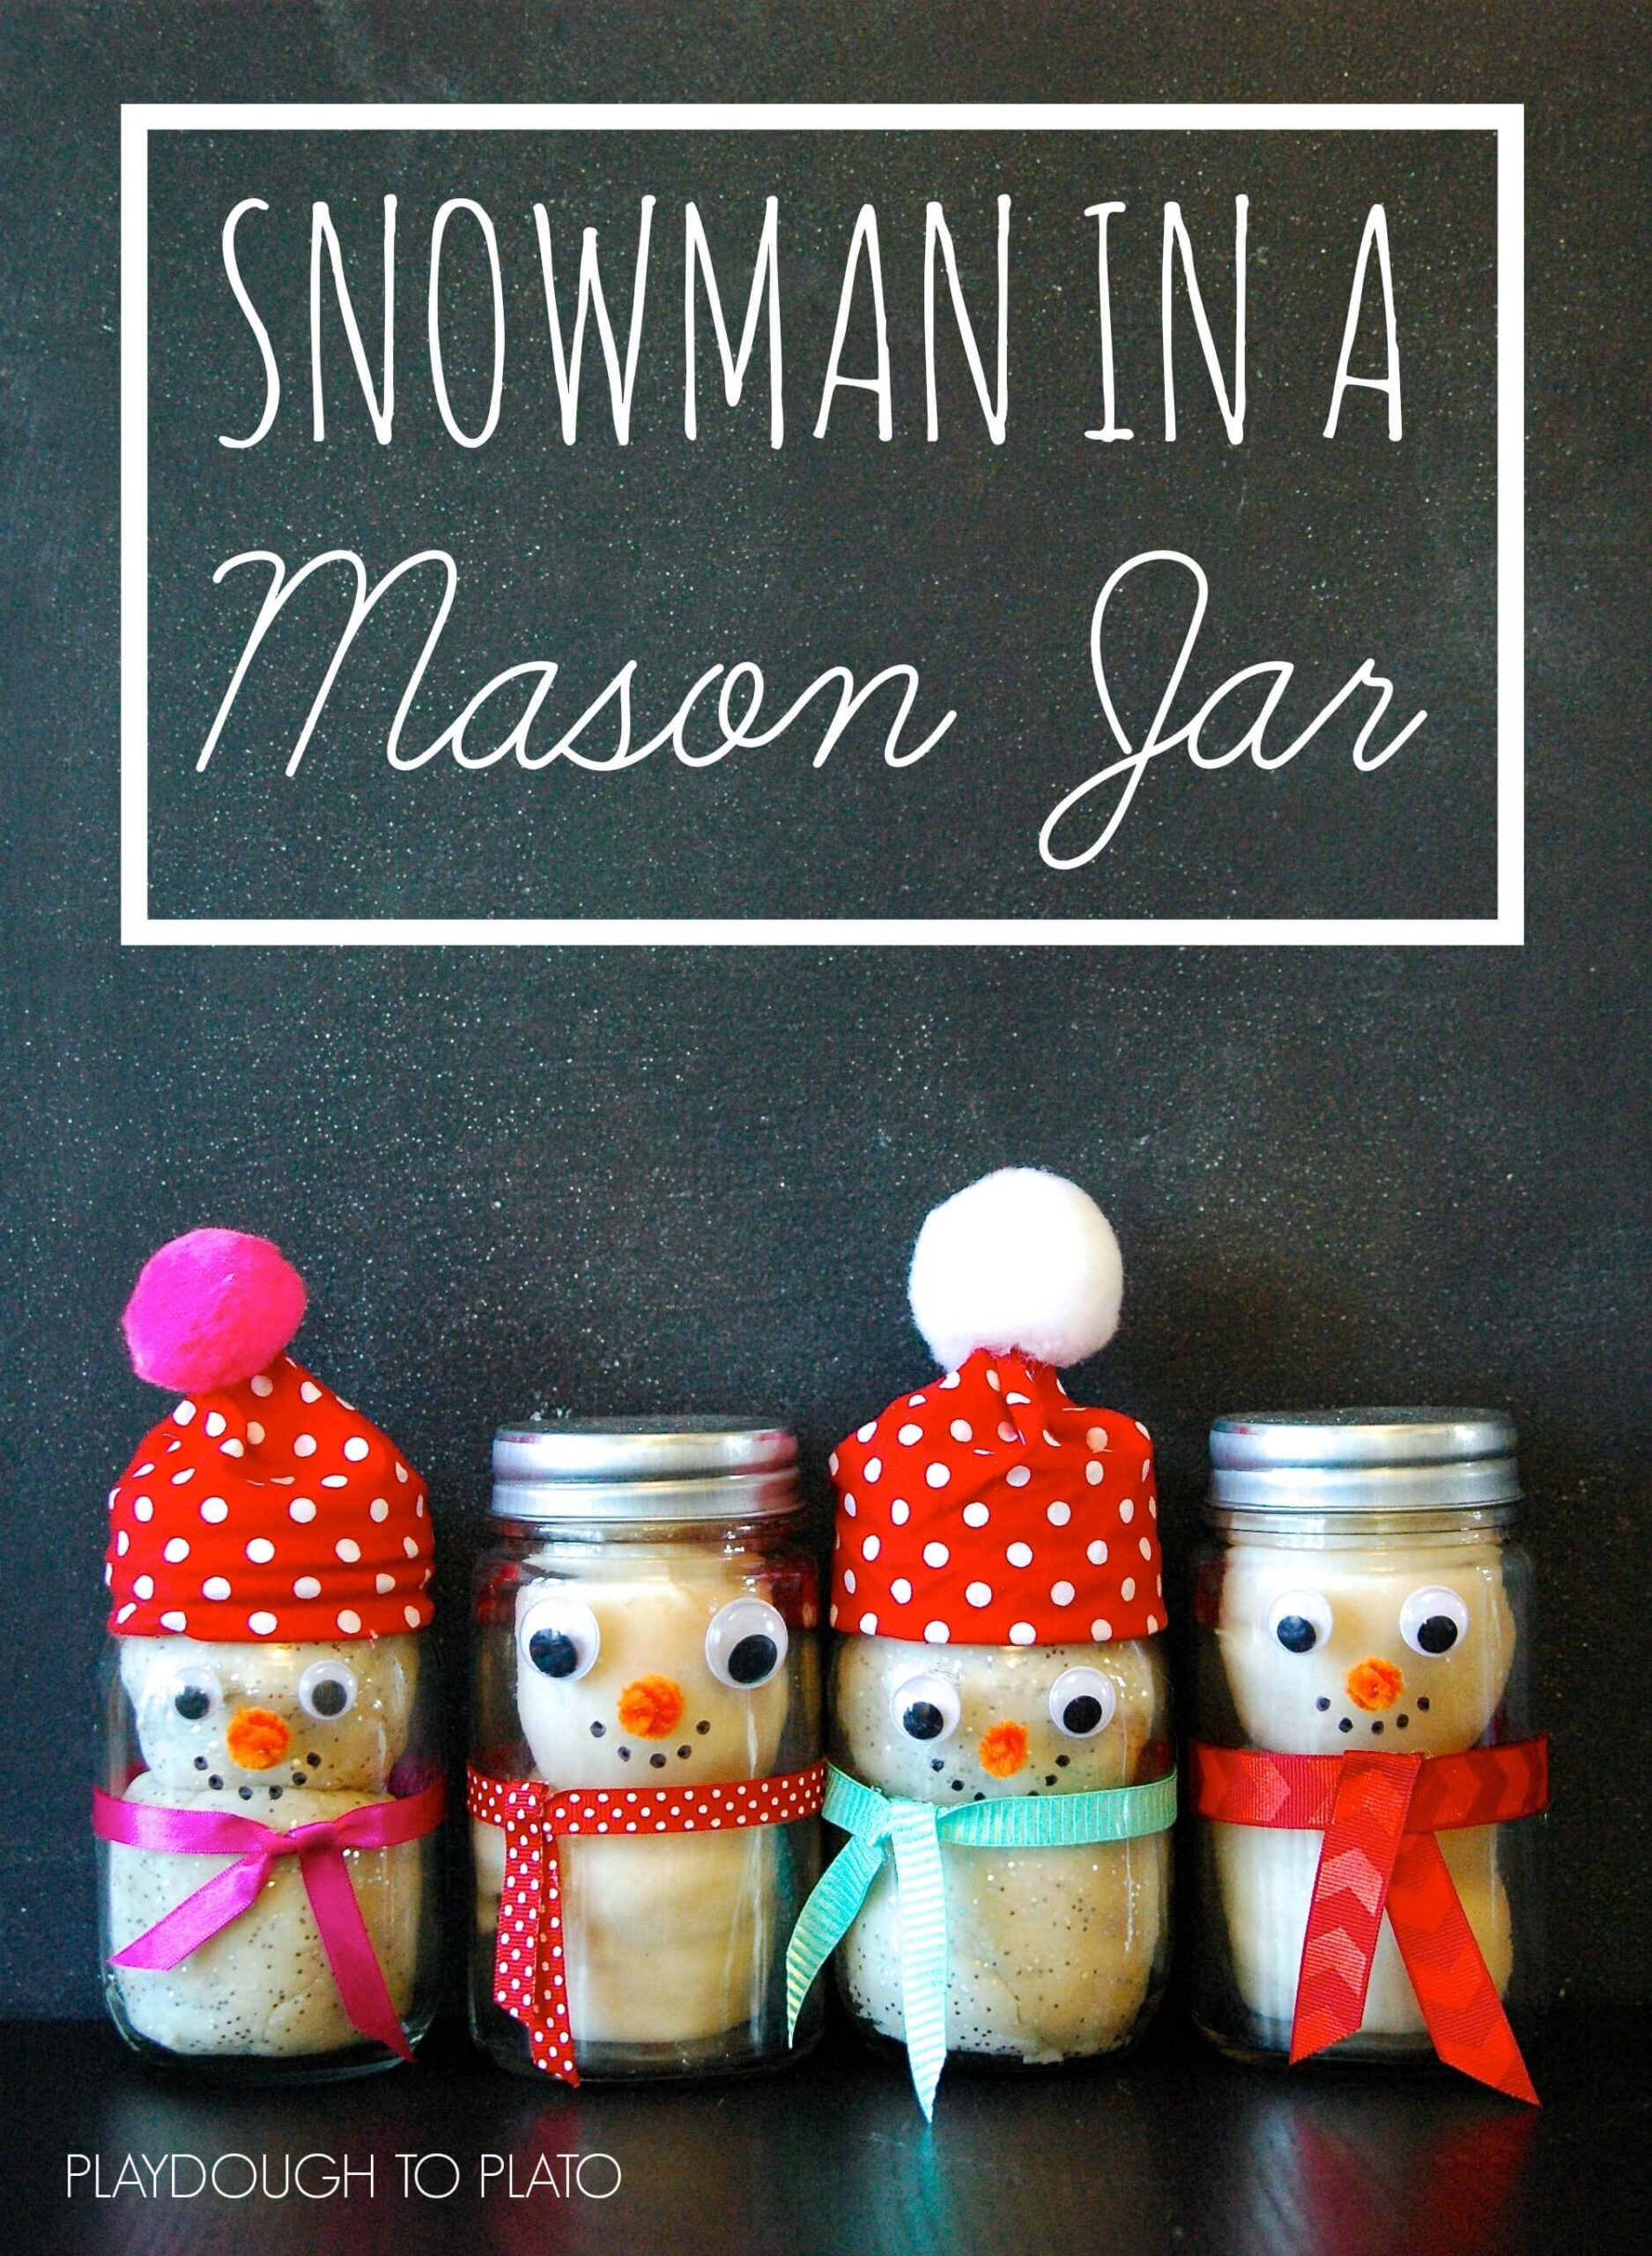 Playdough Snowman in a Mason Jar